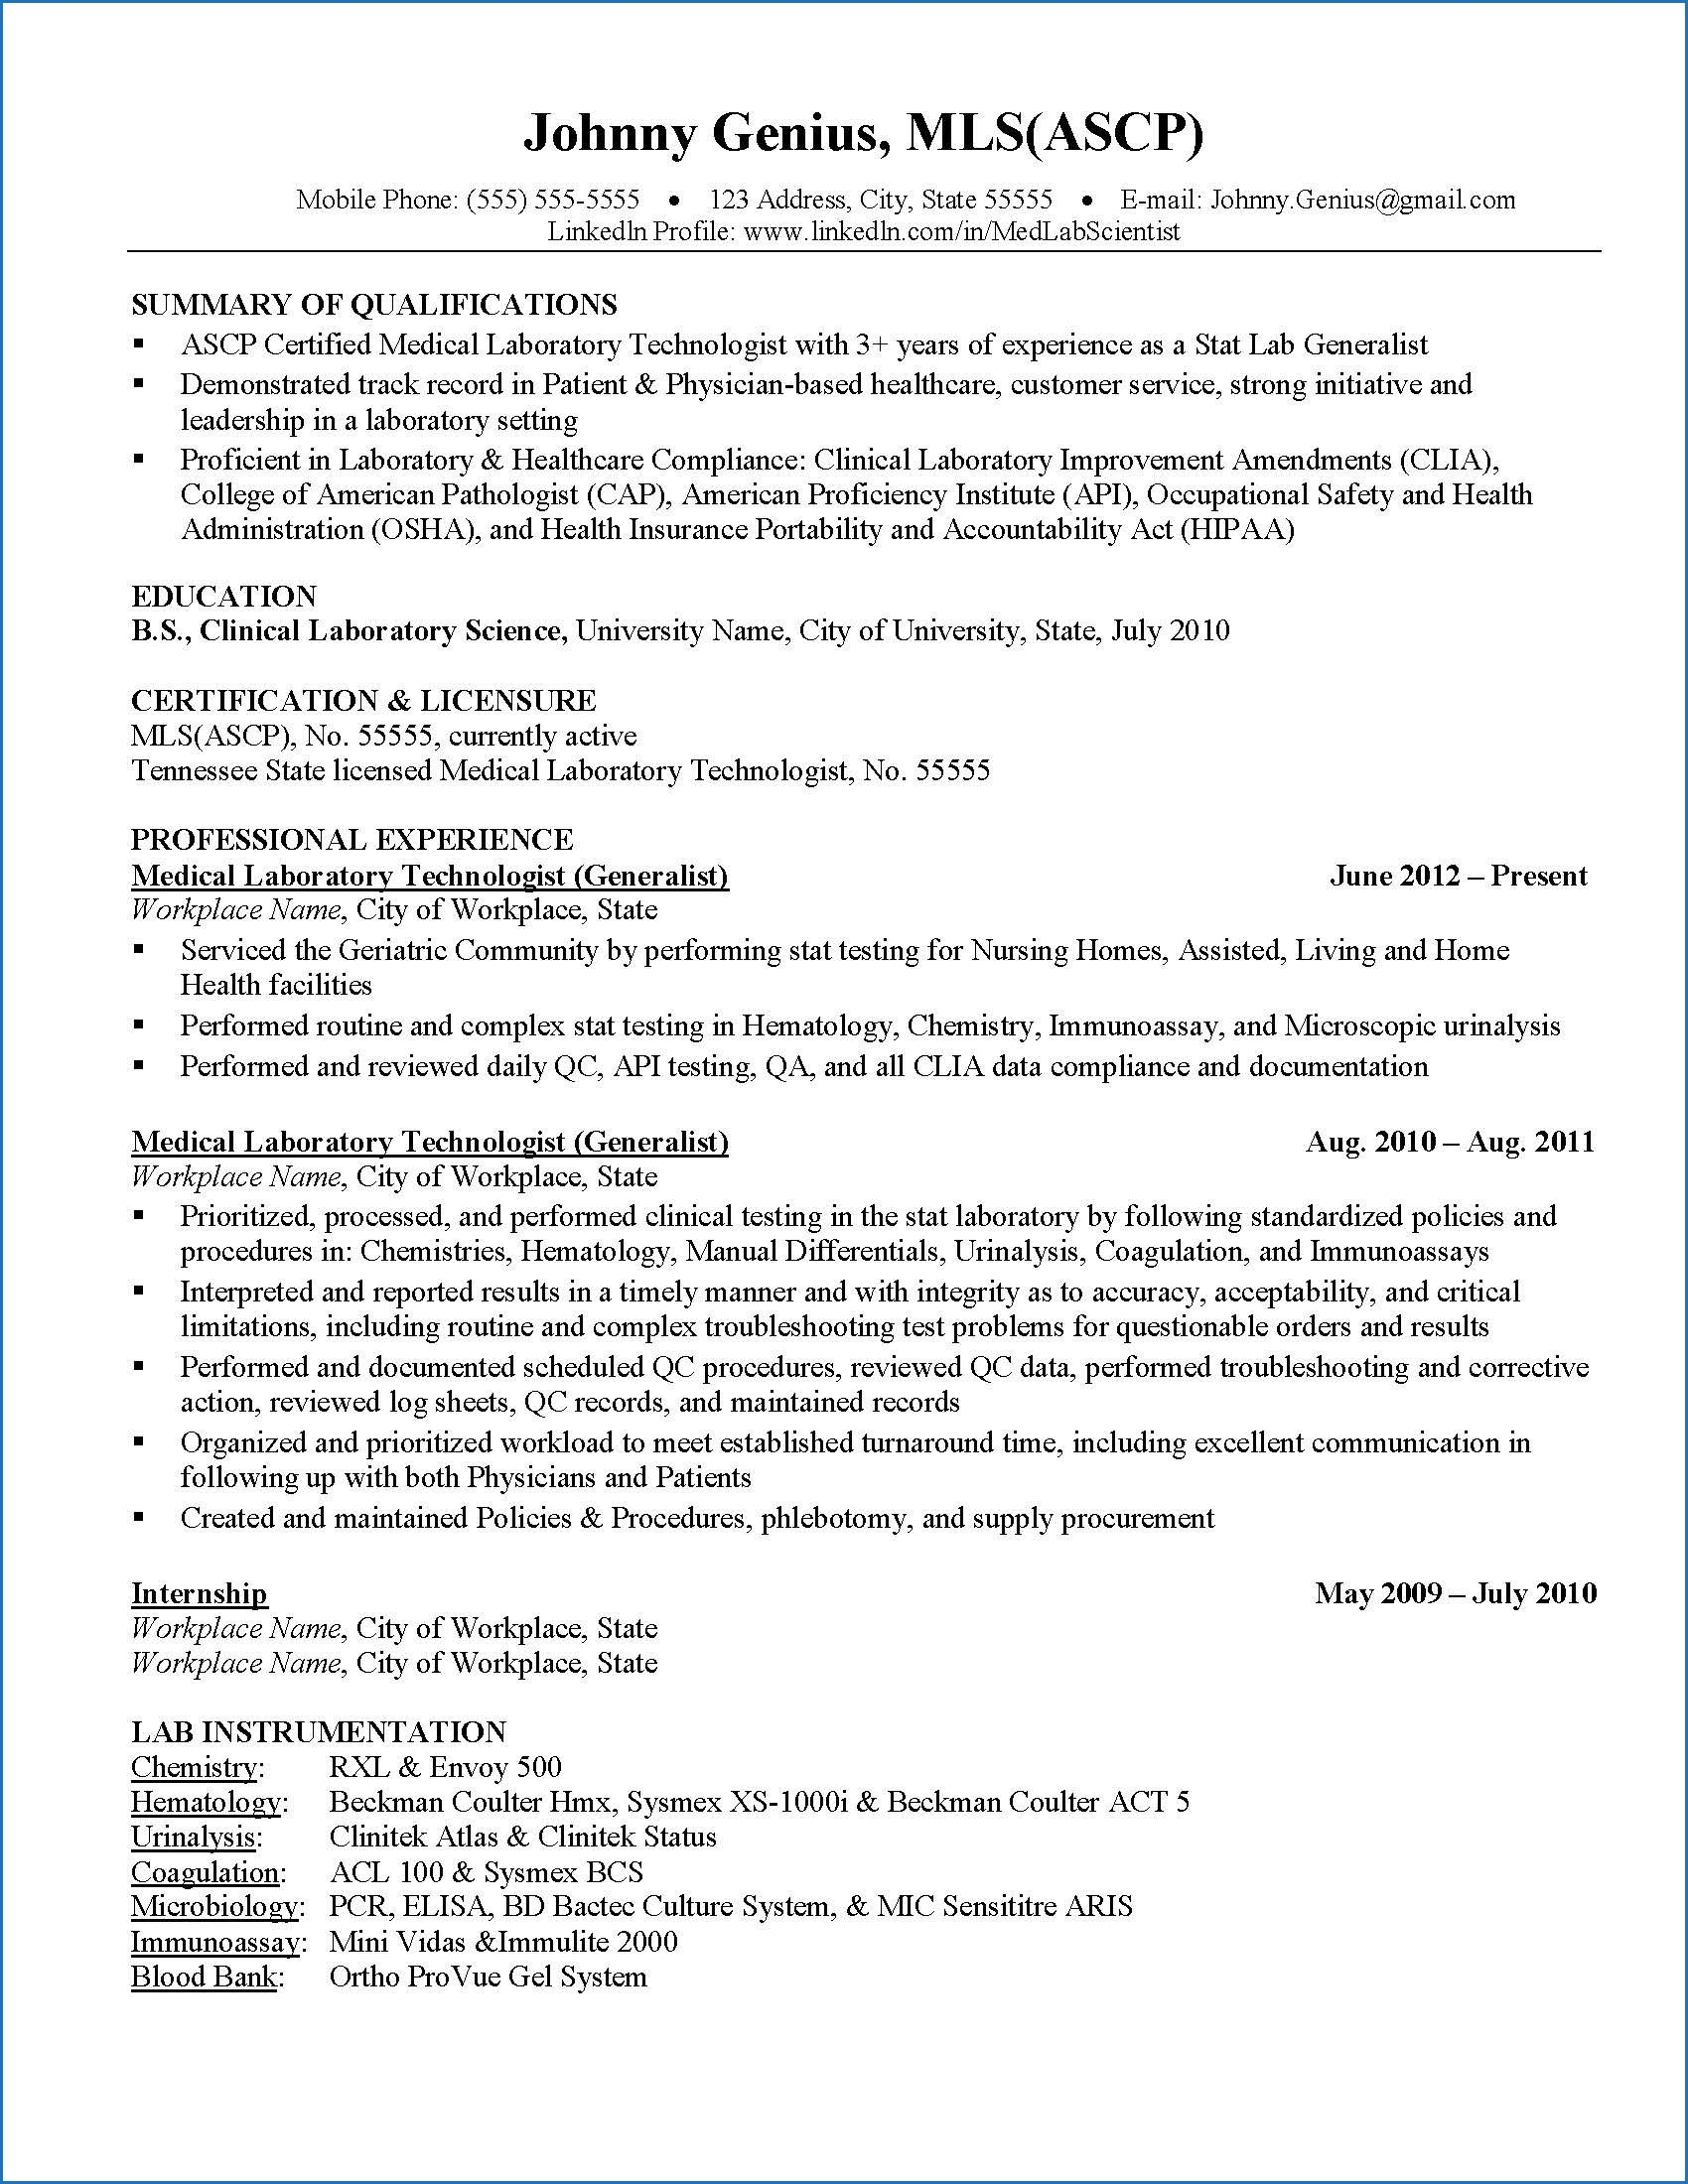 10 Sample Resume Medical Laboratory Scientist Check More At Https